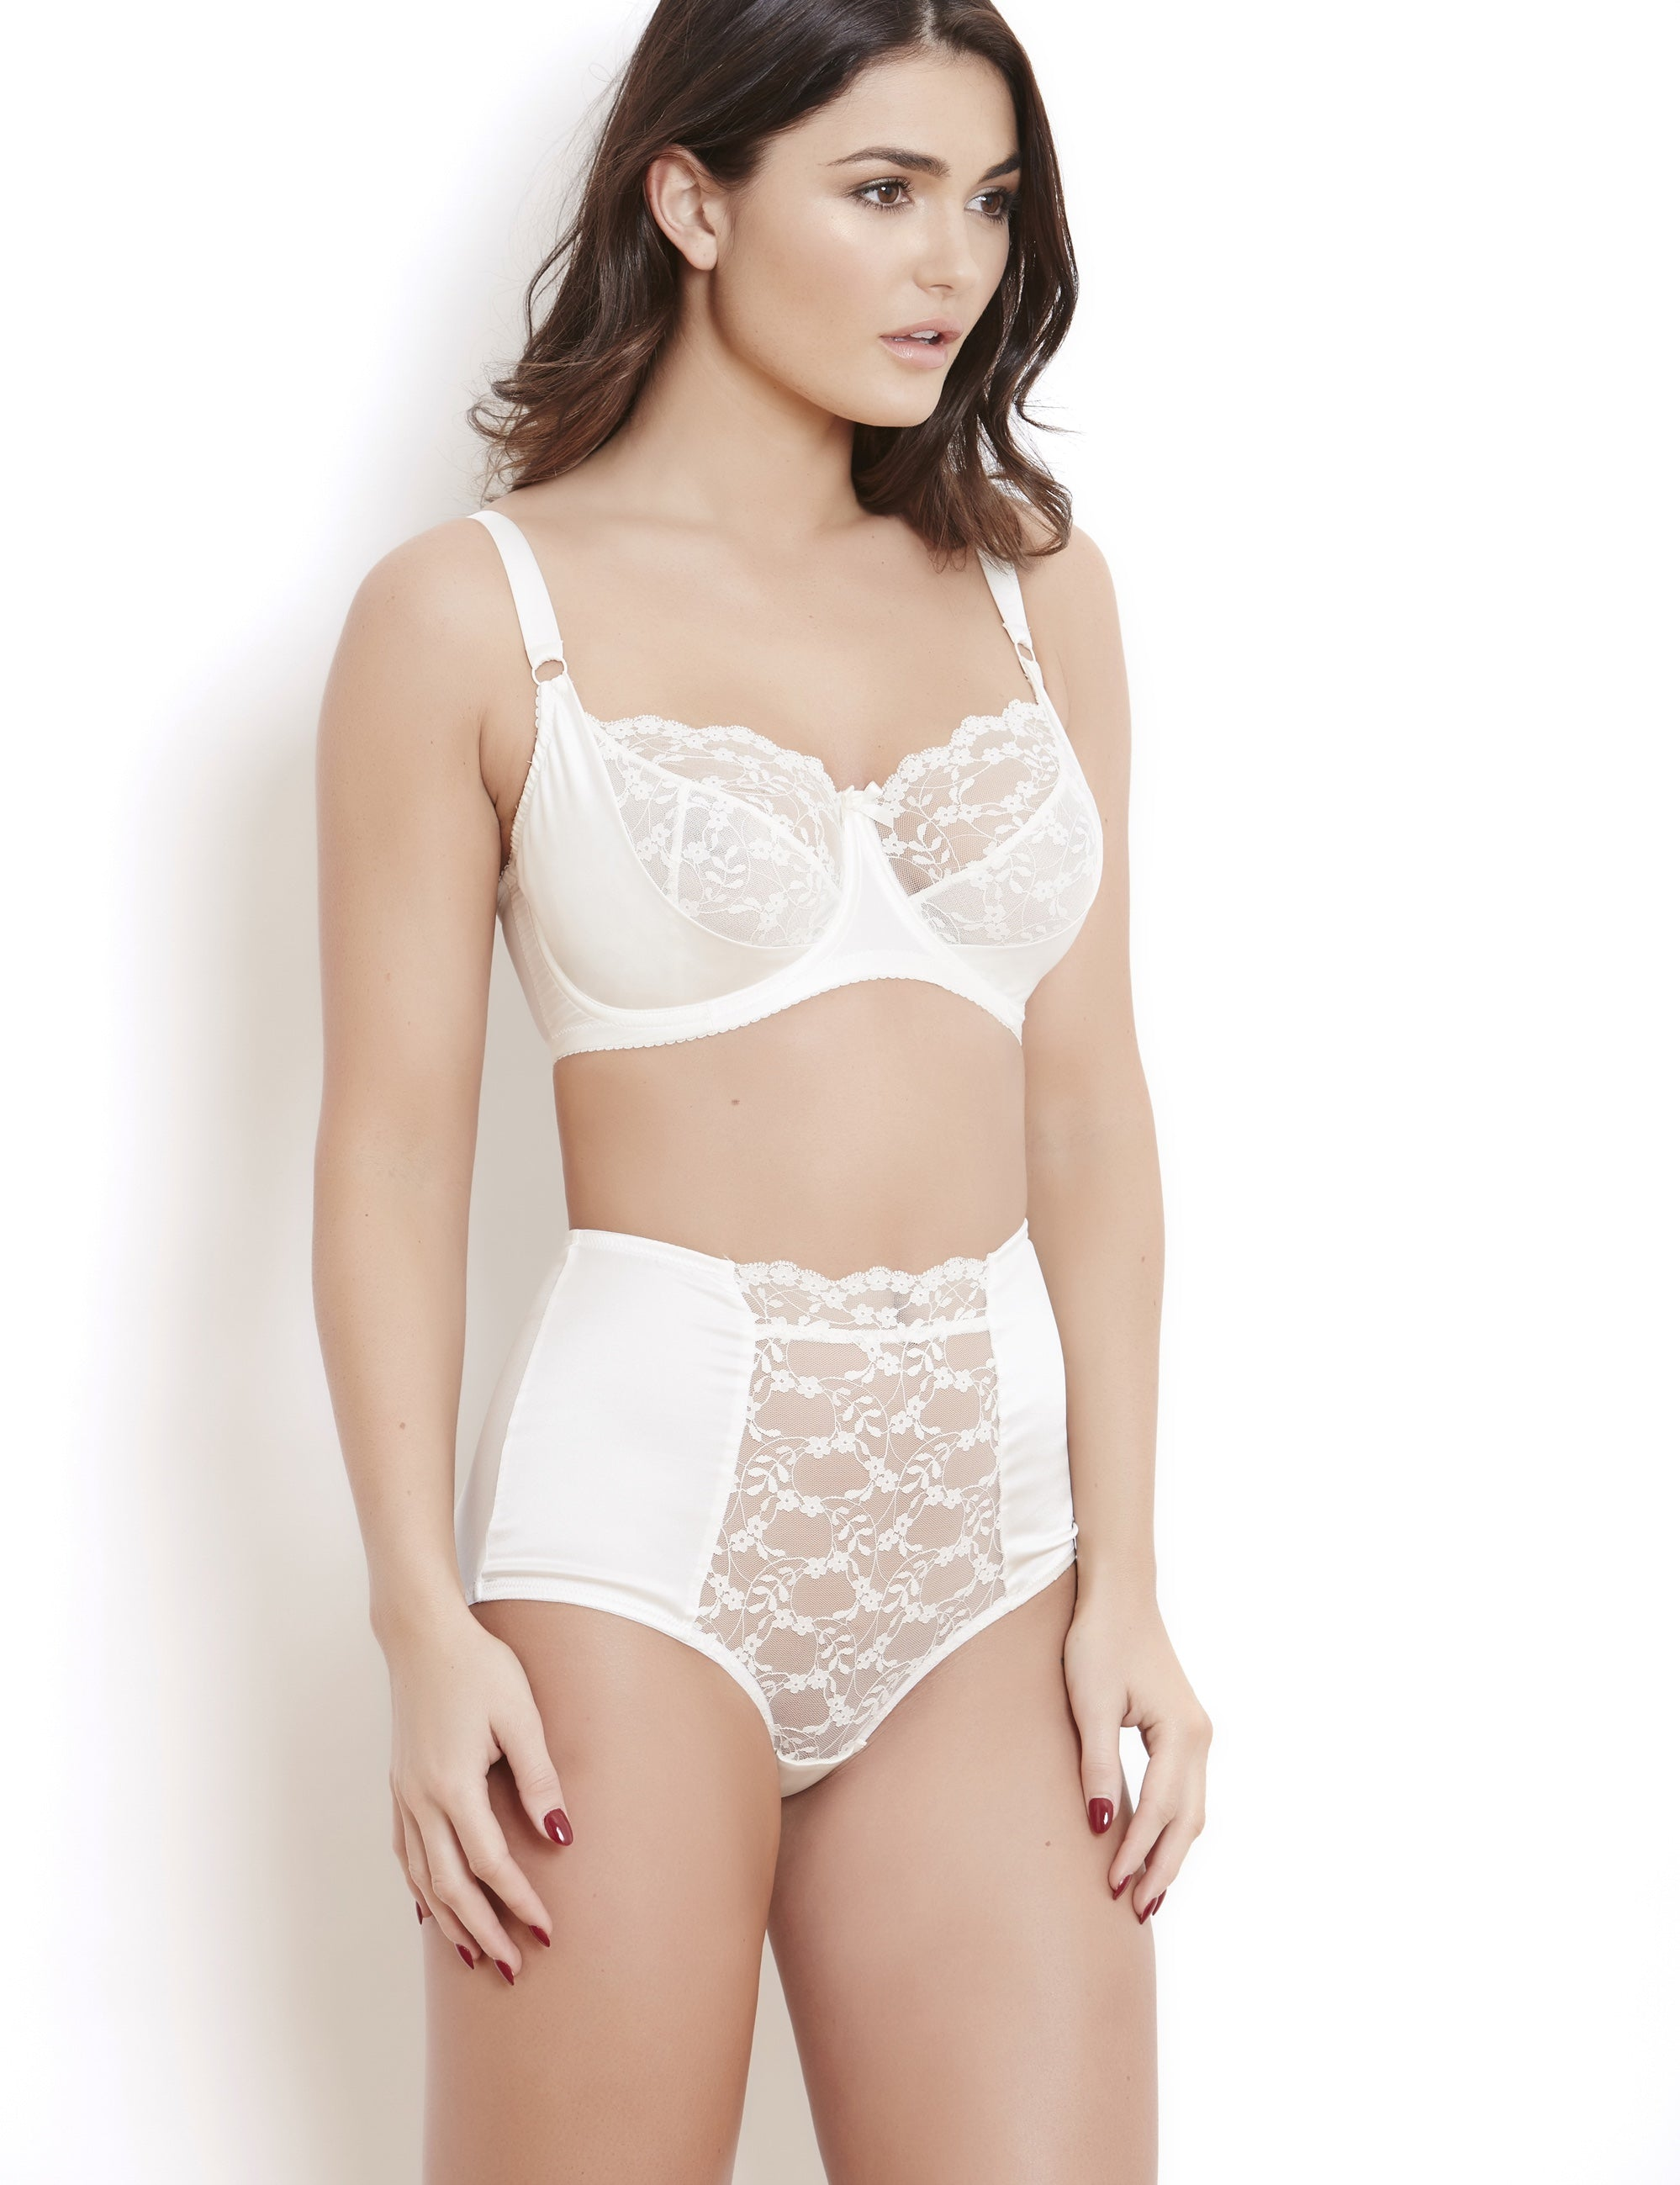 Sophia ivory lace high waist briefs